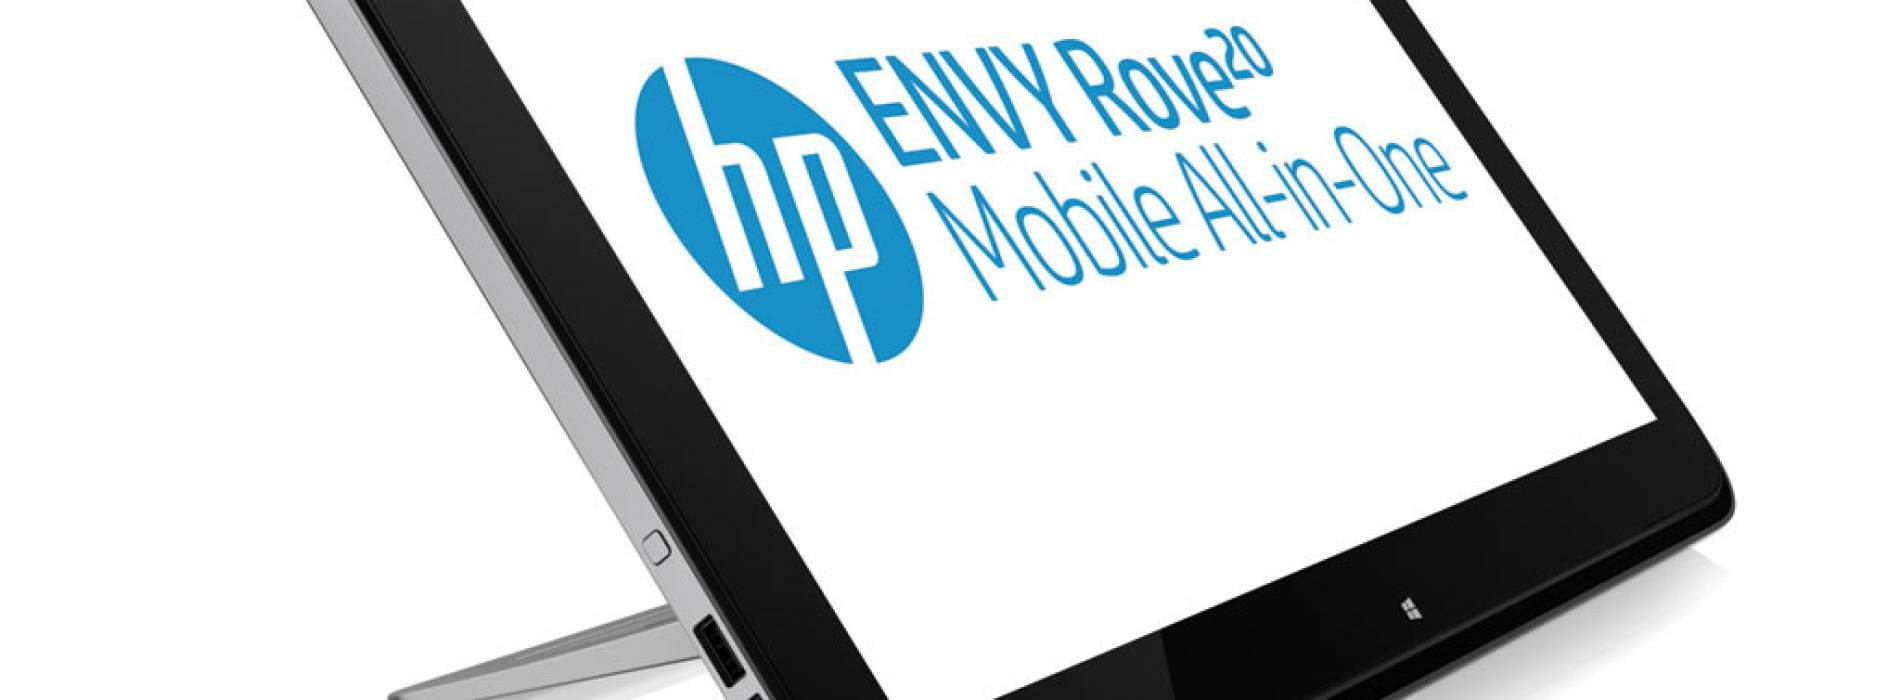 HP ENVY Rove20: PC all-in-one móvil